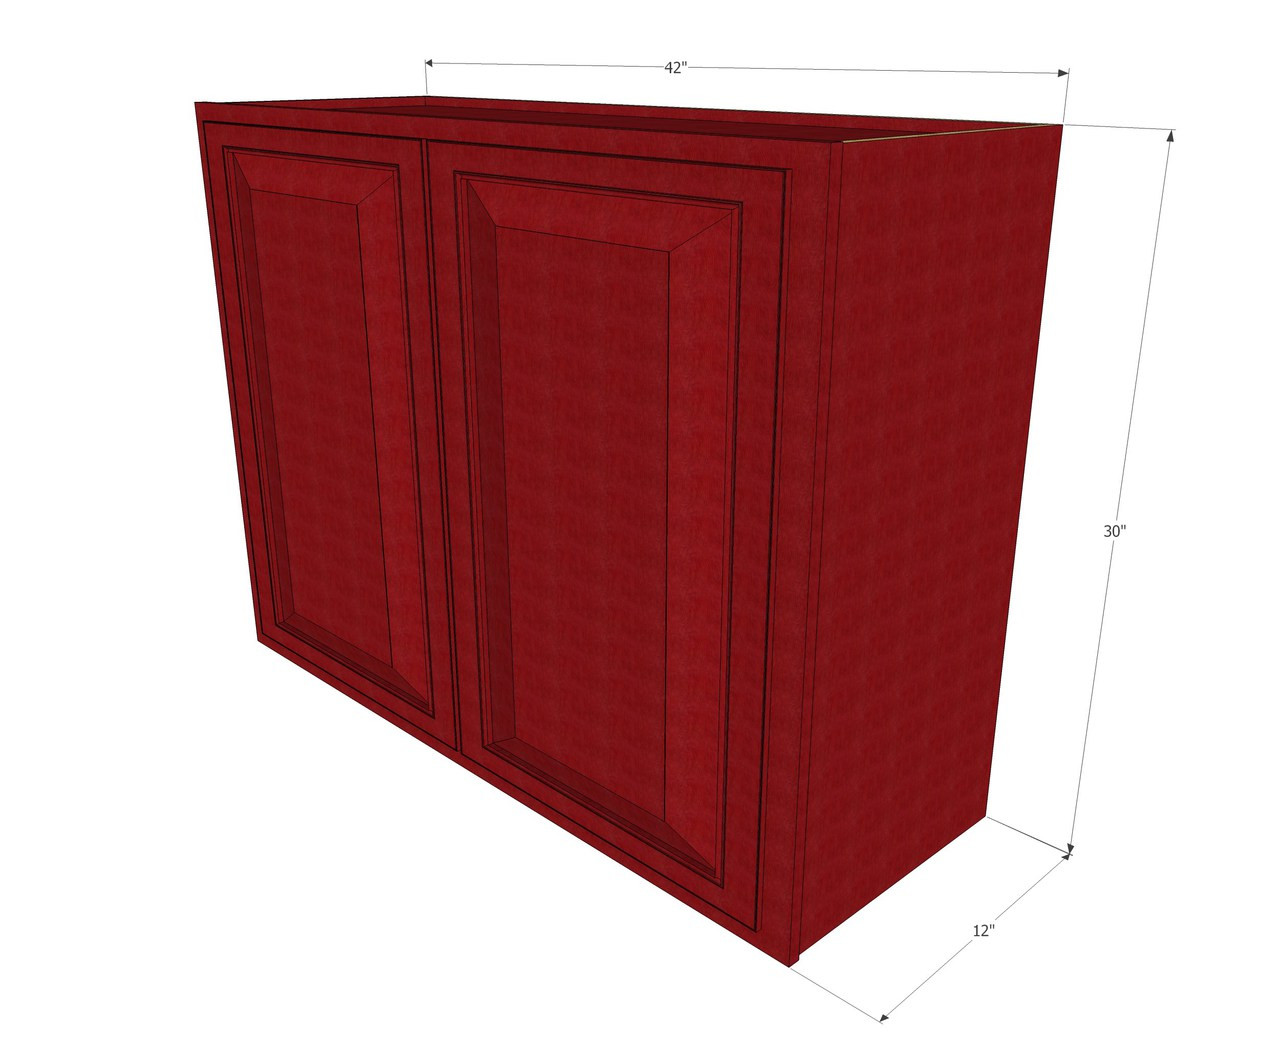 large double door grand reserve cherry wall cabinet - 42 inch wide x 30 inch high file cabinet